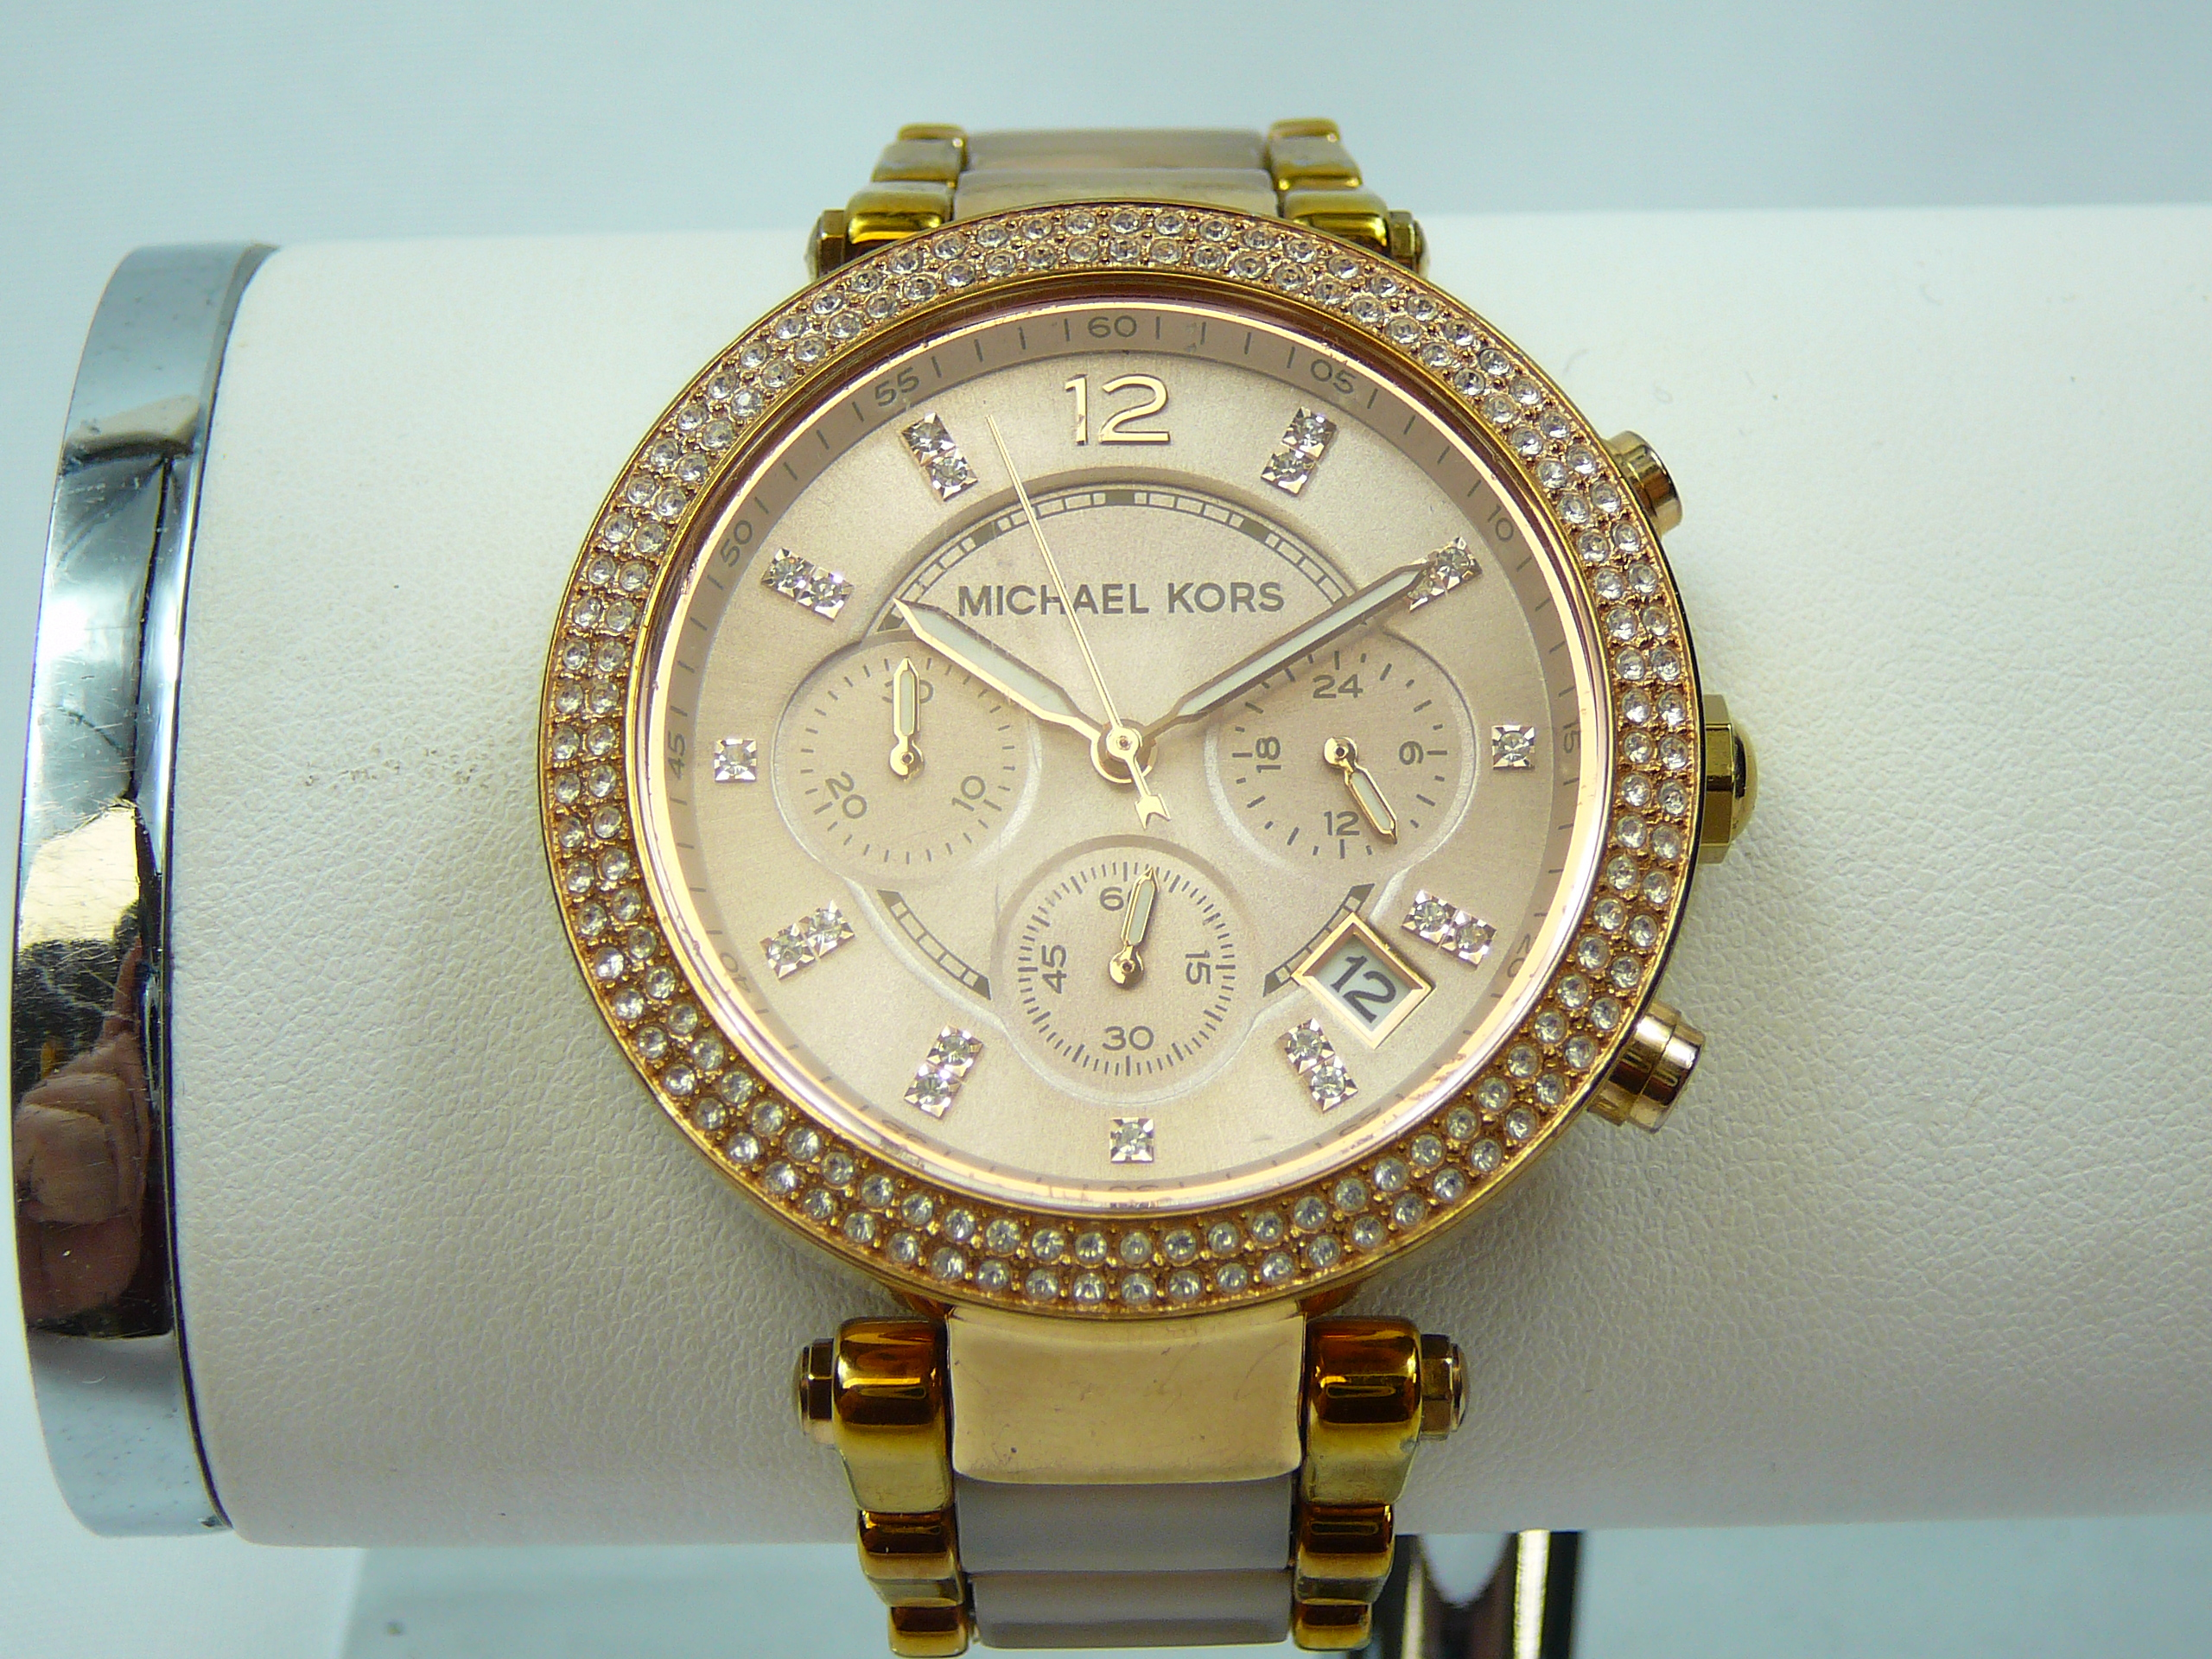 Ladies Michael Kors Wrist Watch - Image 2 of 3